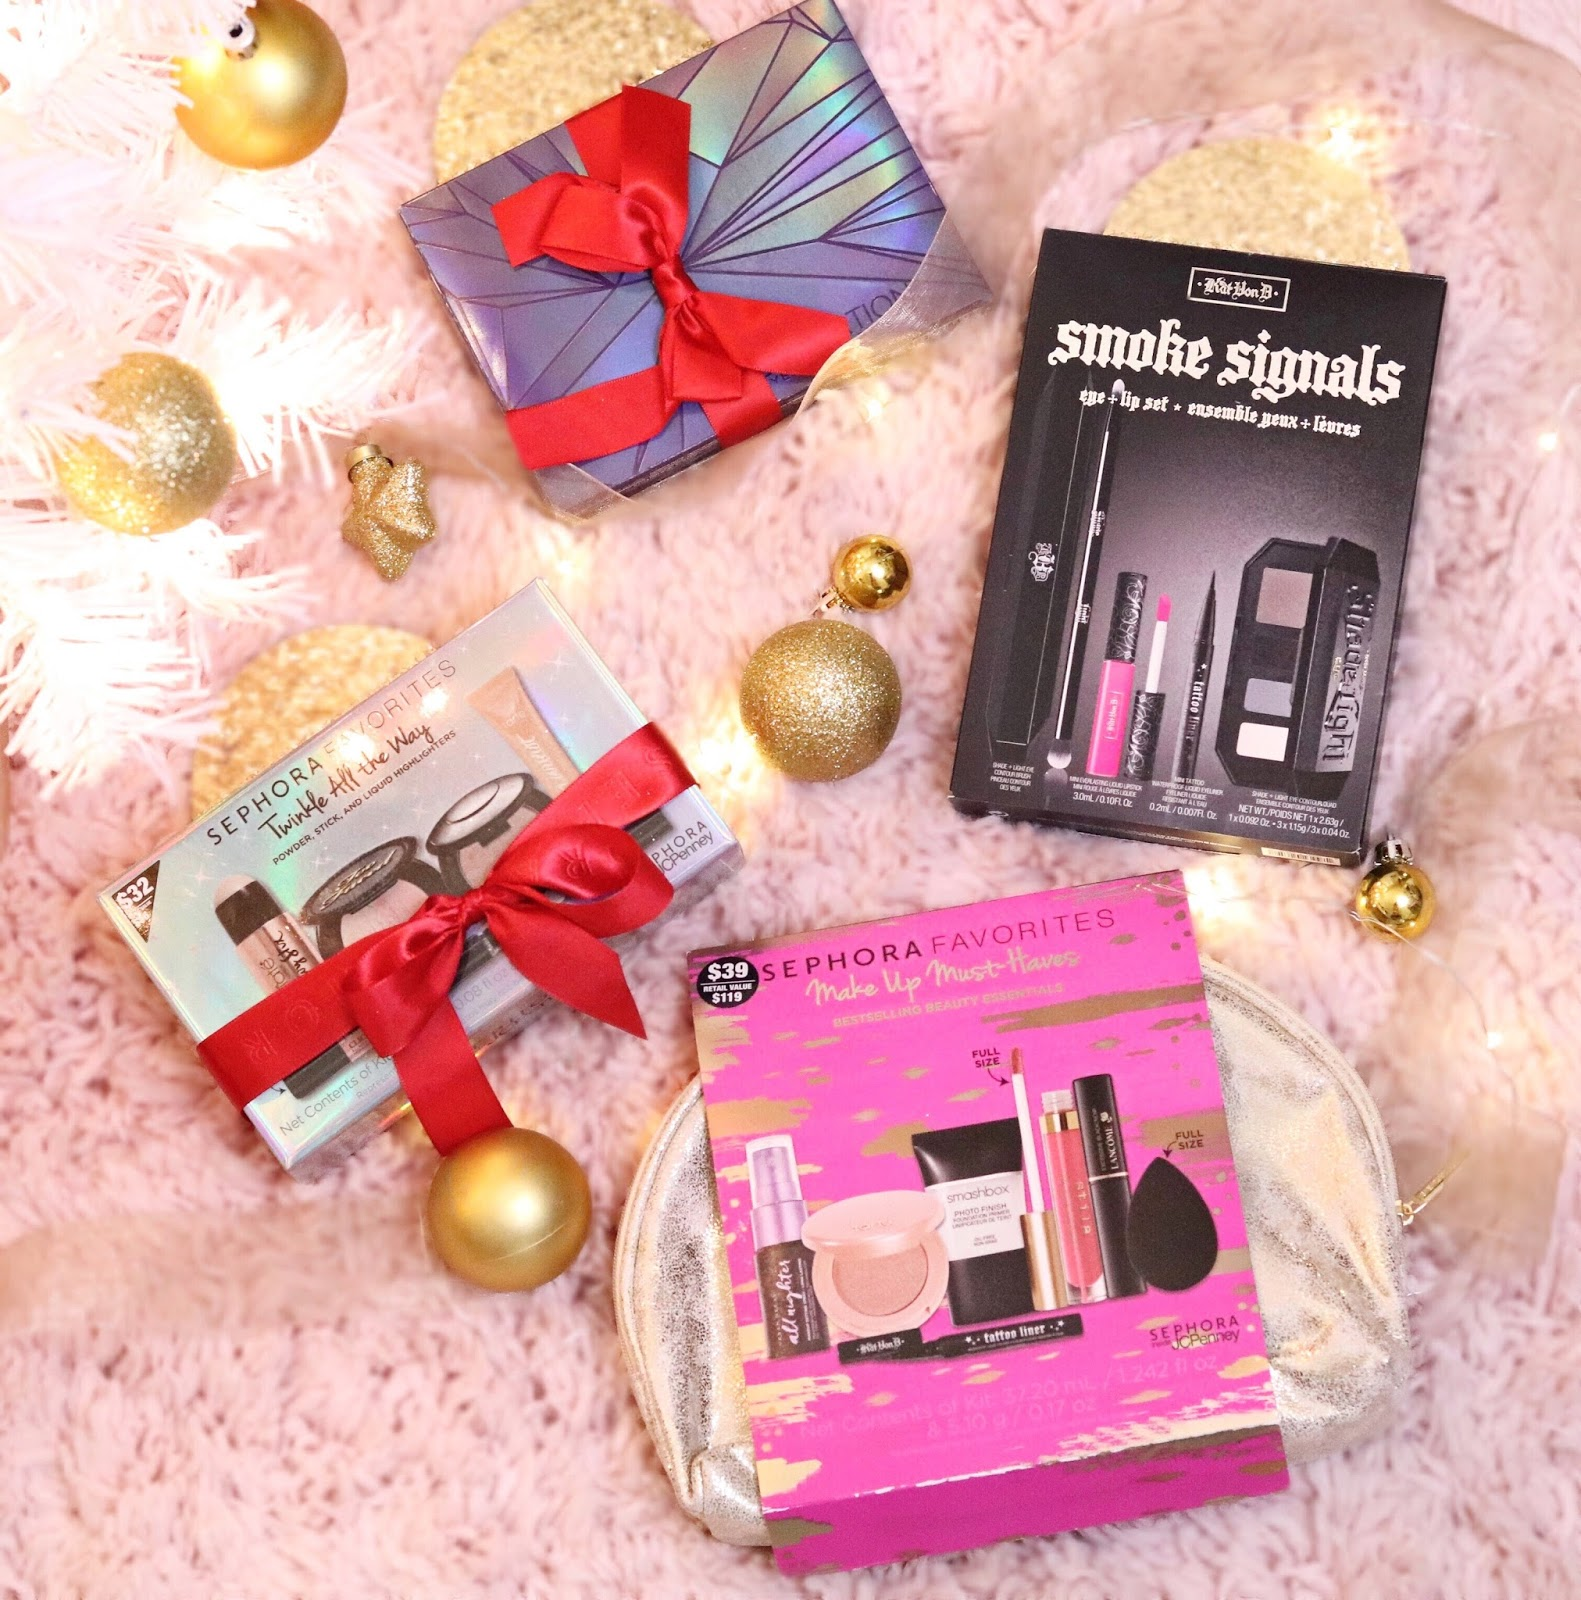 Sephora inside JCPenney Holiday Gift Guide, Sephora inside JCPenney Gift Guide, Beauty products gift guide